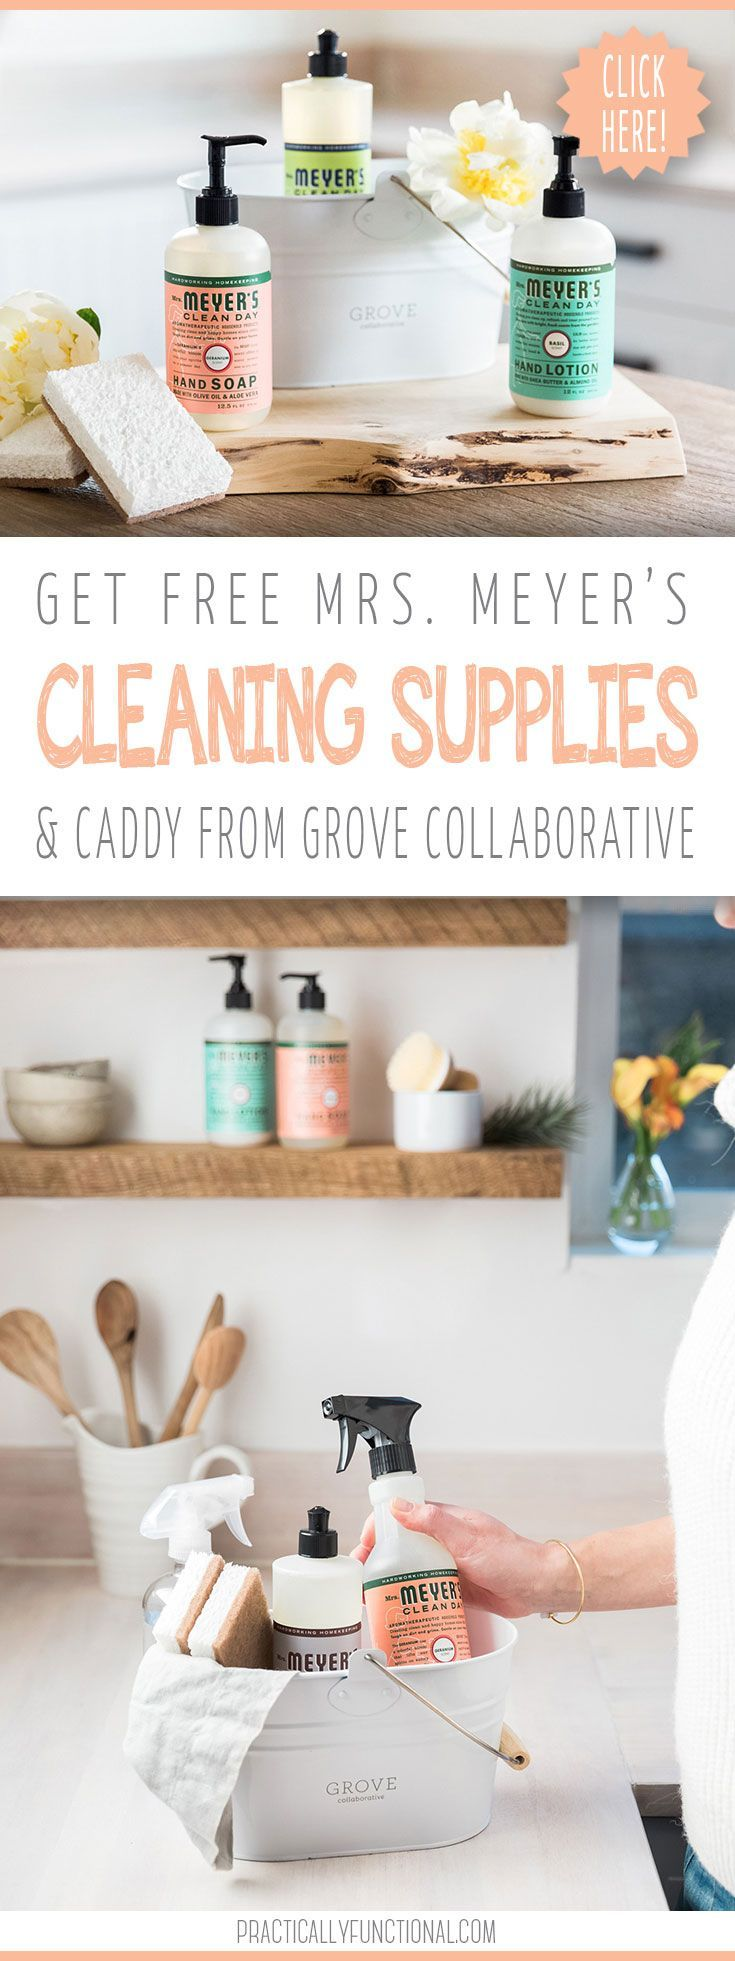 best 25 cleaning caddy ideas on pinterest house cleaning checklist cleaning checklist. Black Bedroom Furniture Sets. Home Design Ideas